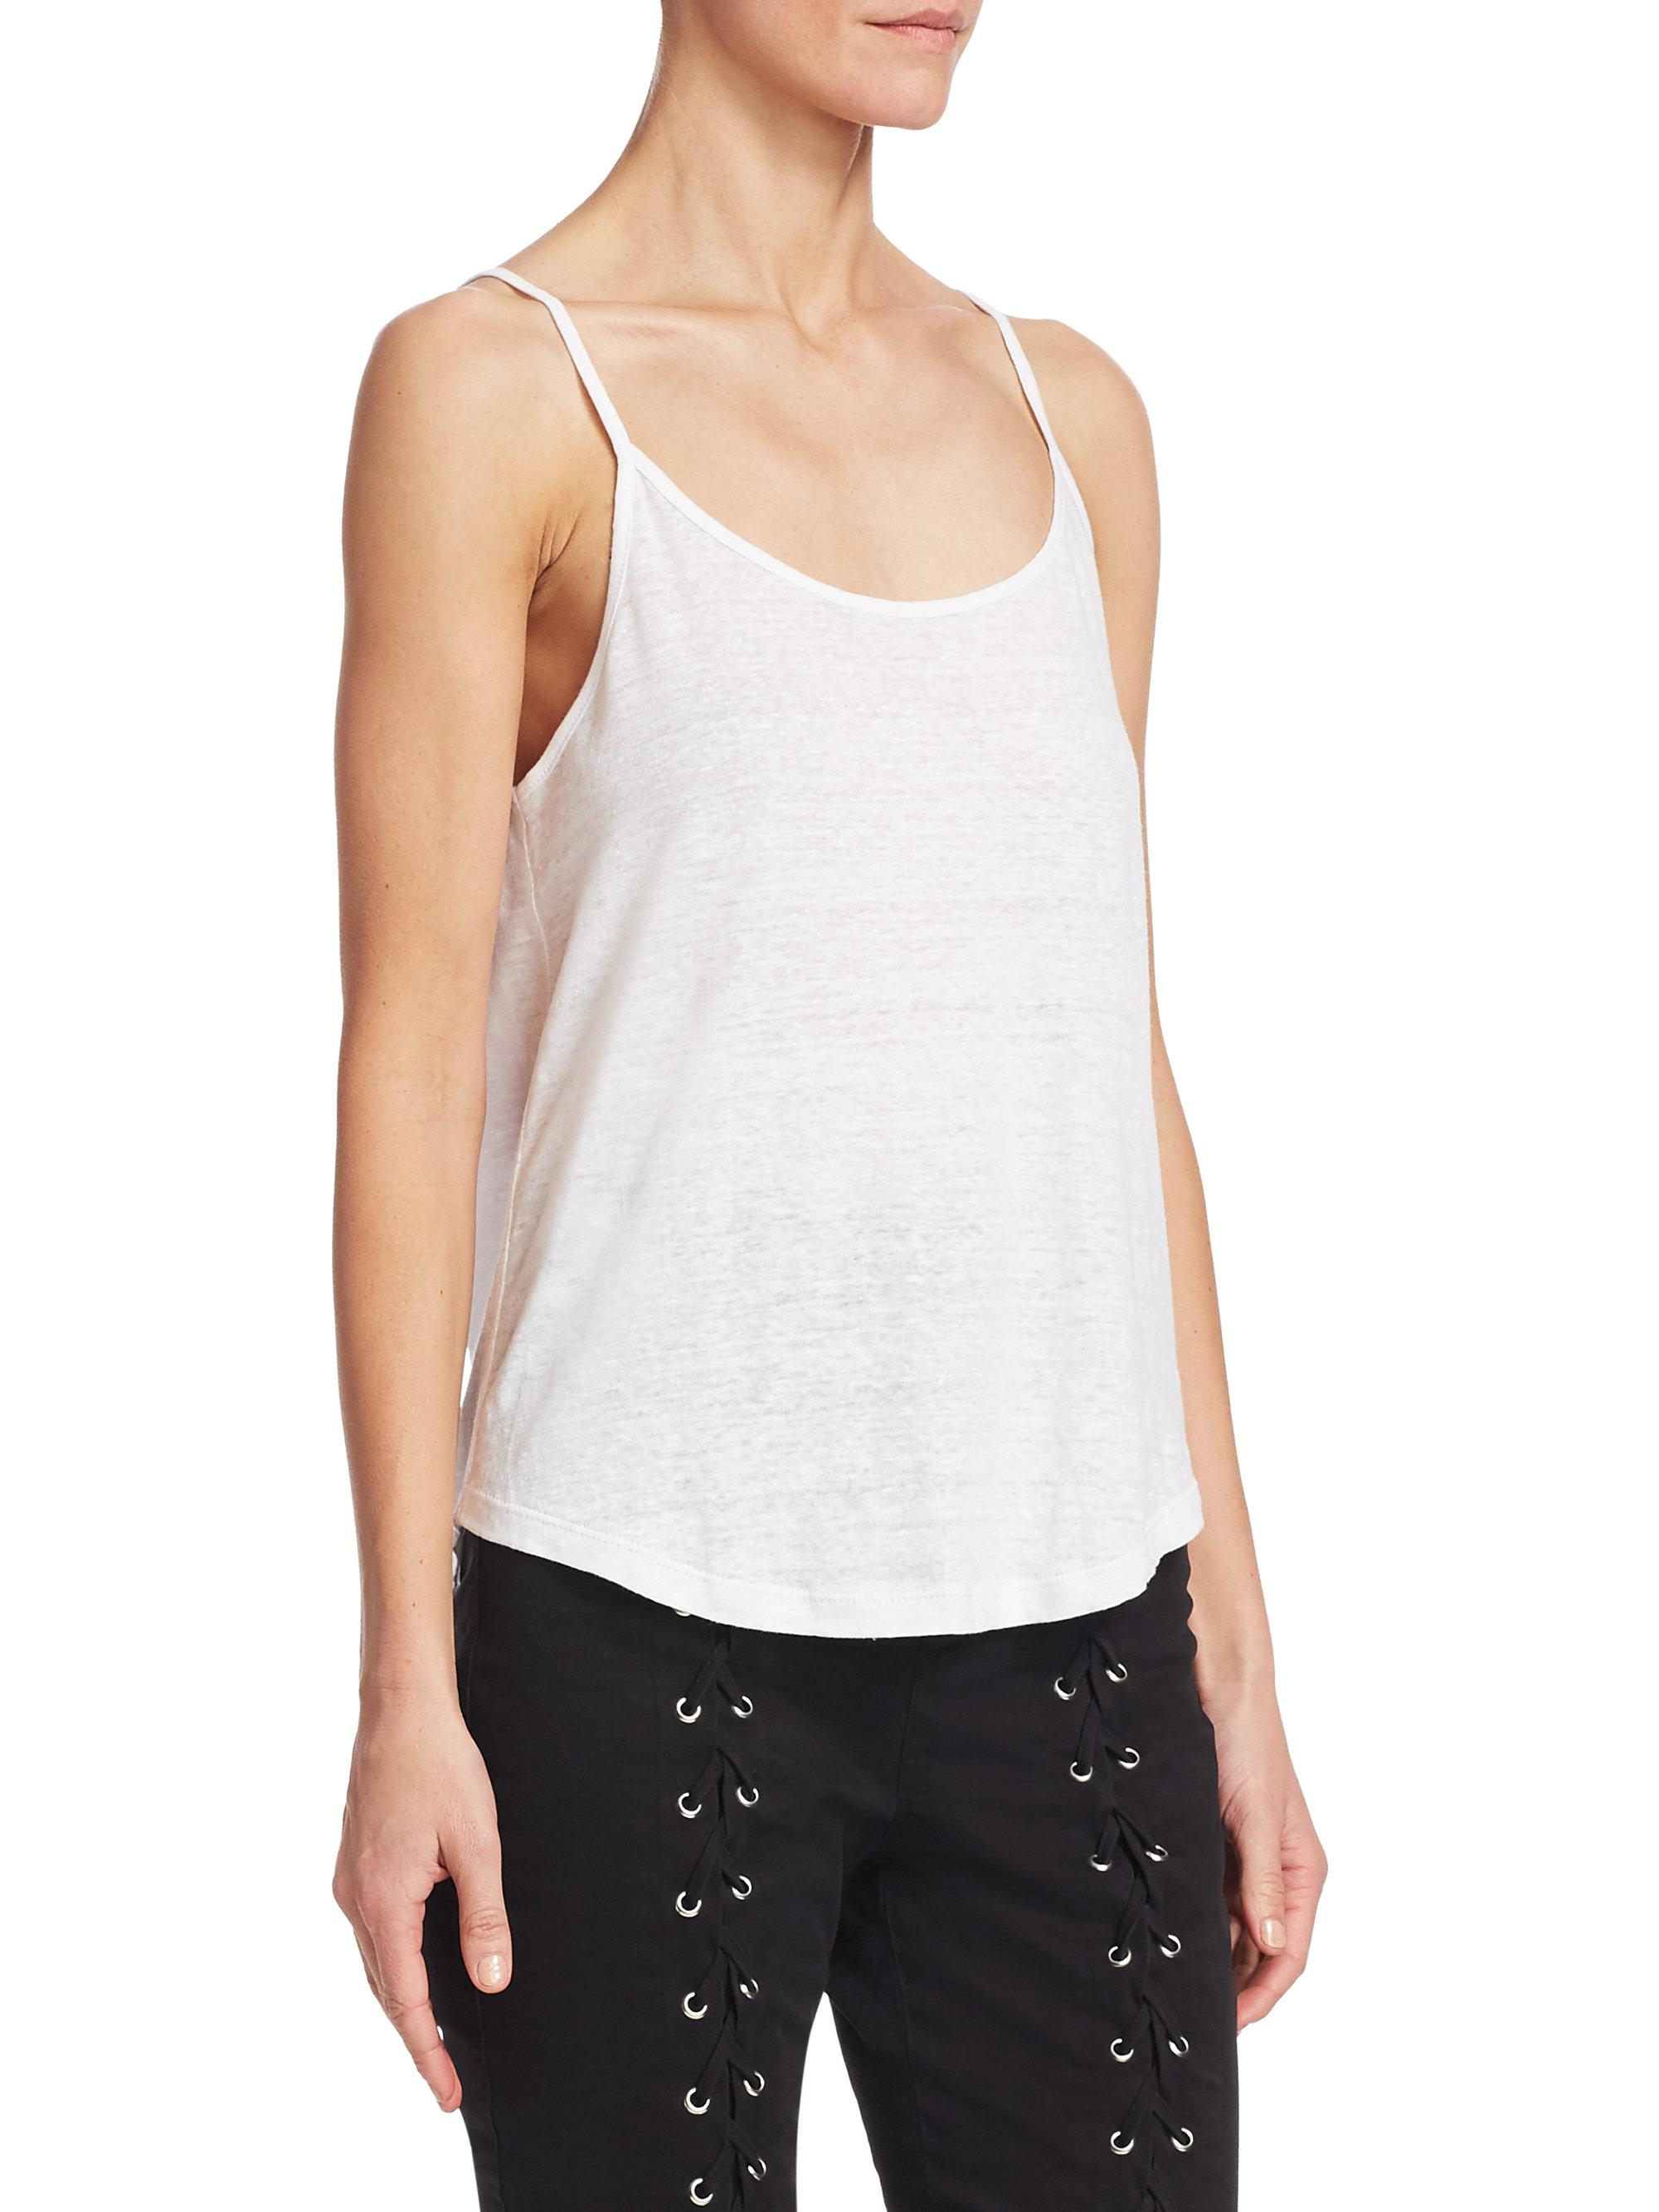 Alc Johnny Solid Tank In White Lyst Raisa Blouse Light Blue Beatrice Clothing Gallery